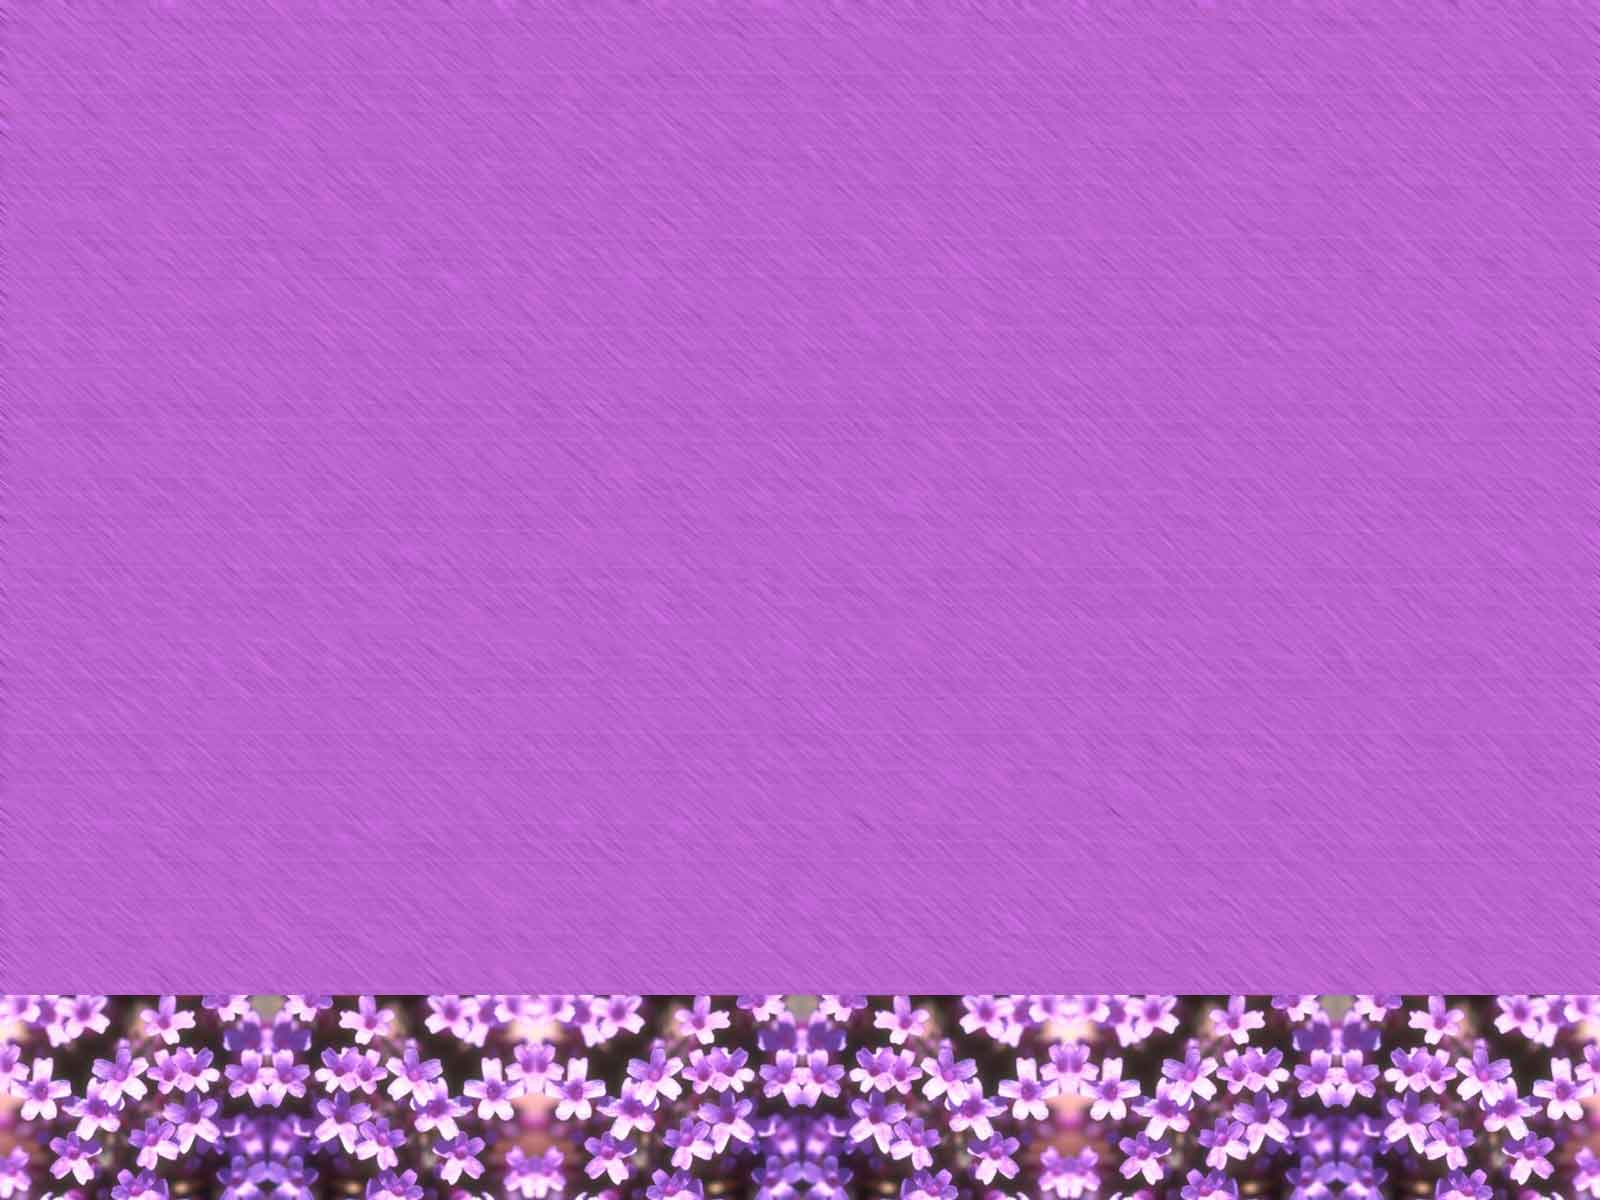 Purple Texture With Flower theme for PowerPoint backgrounds, or ...